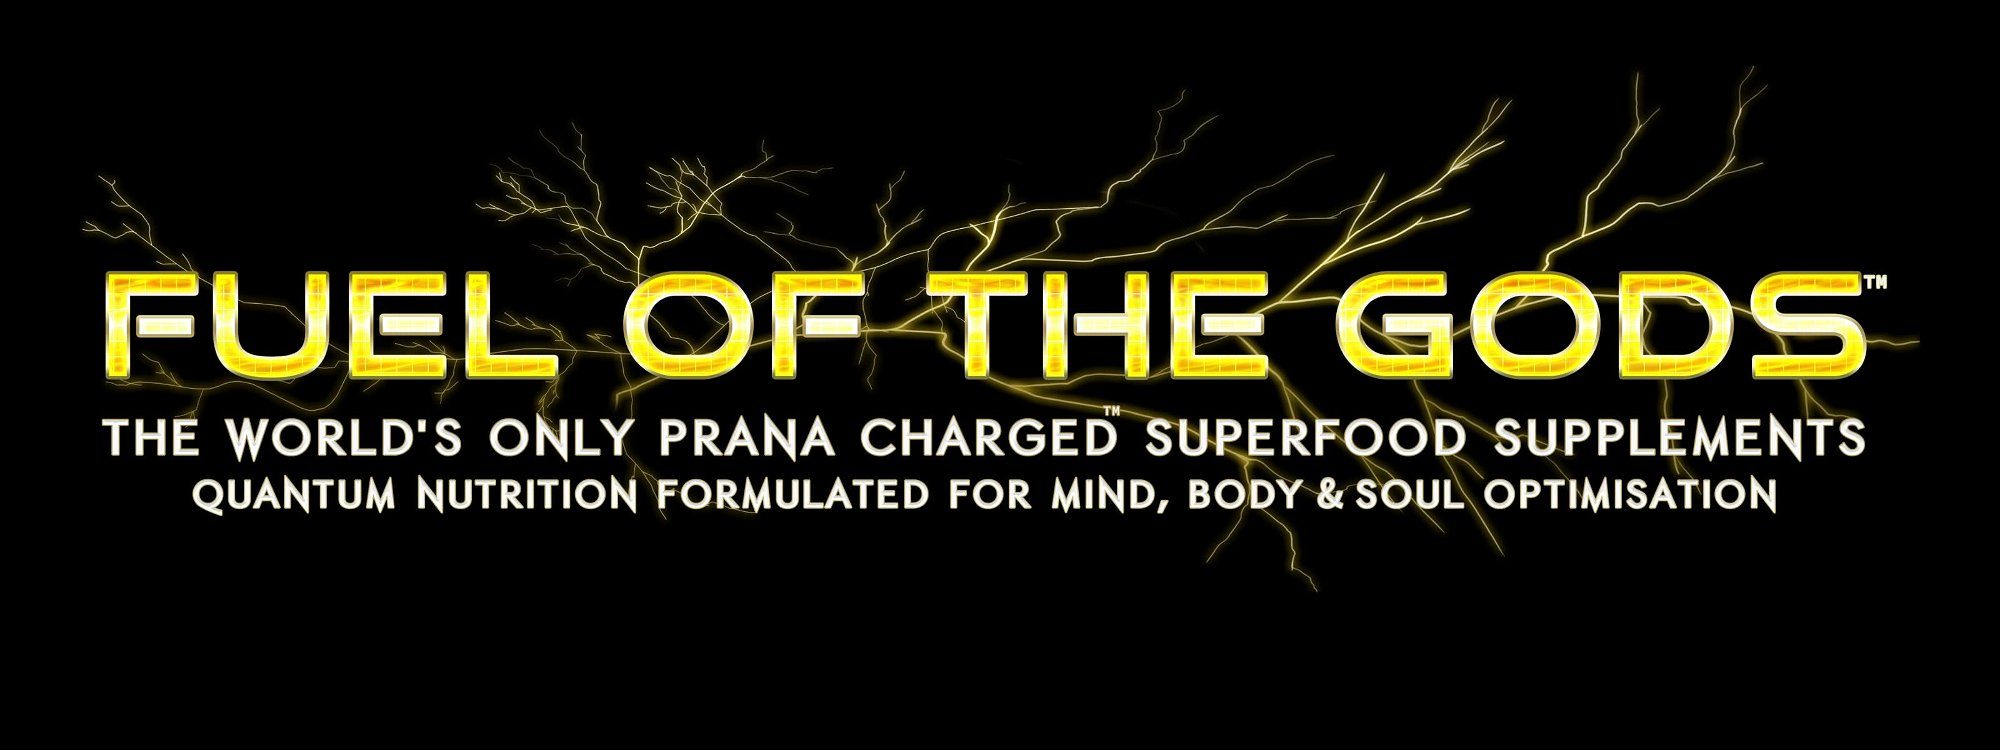 fuel of the gods prana charged superfood supplements